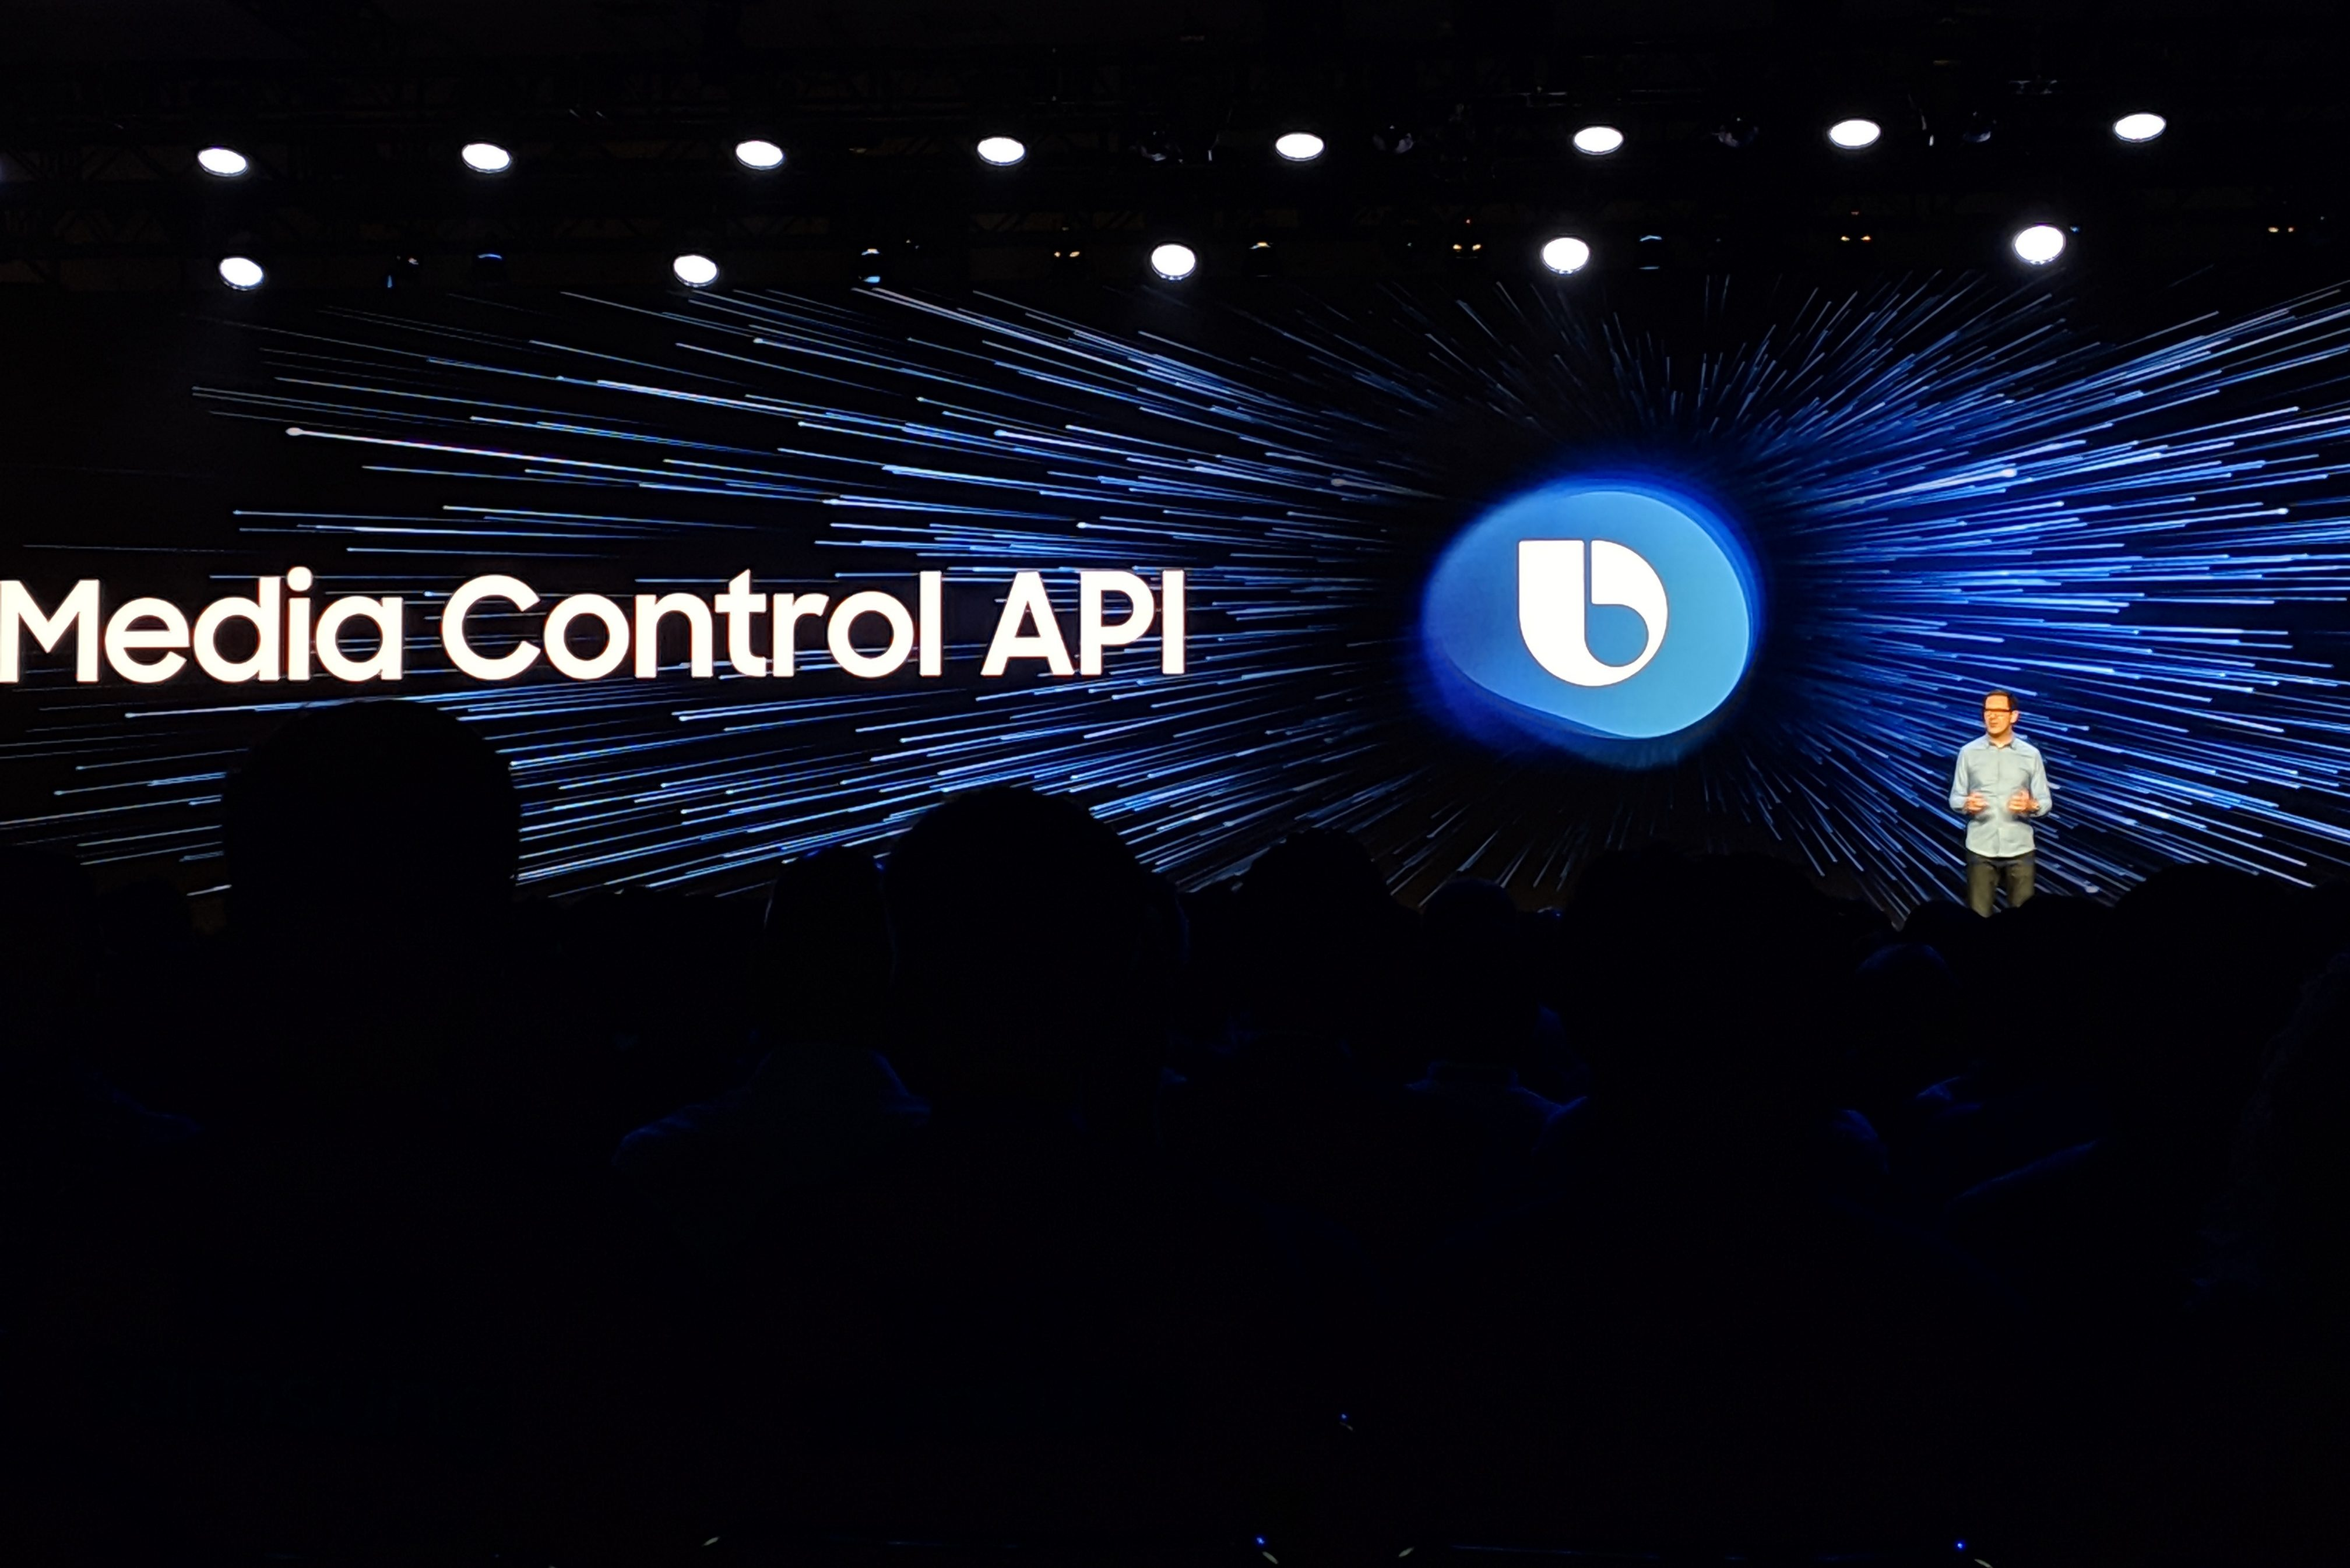 Samsung announces Media Control API for Bixby-enabled smart